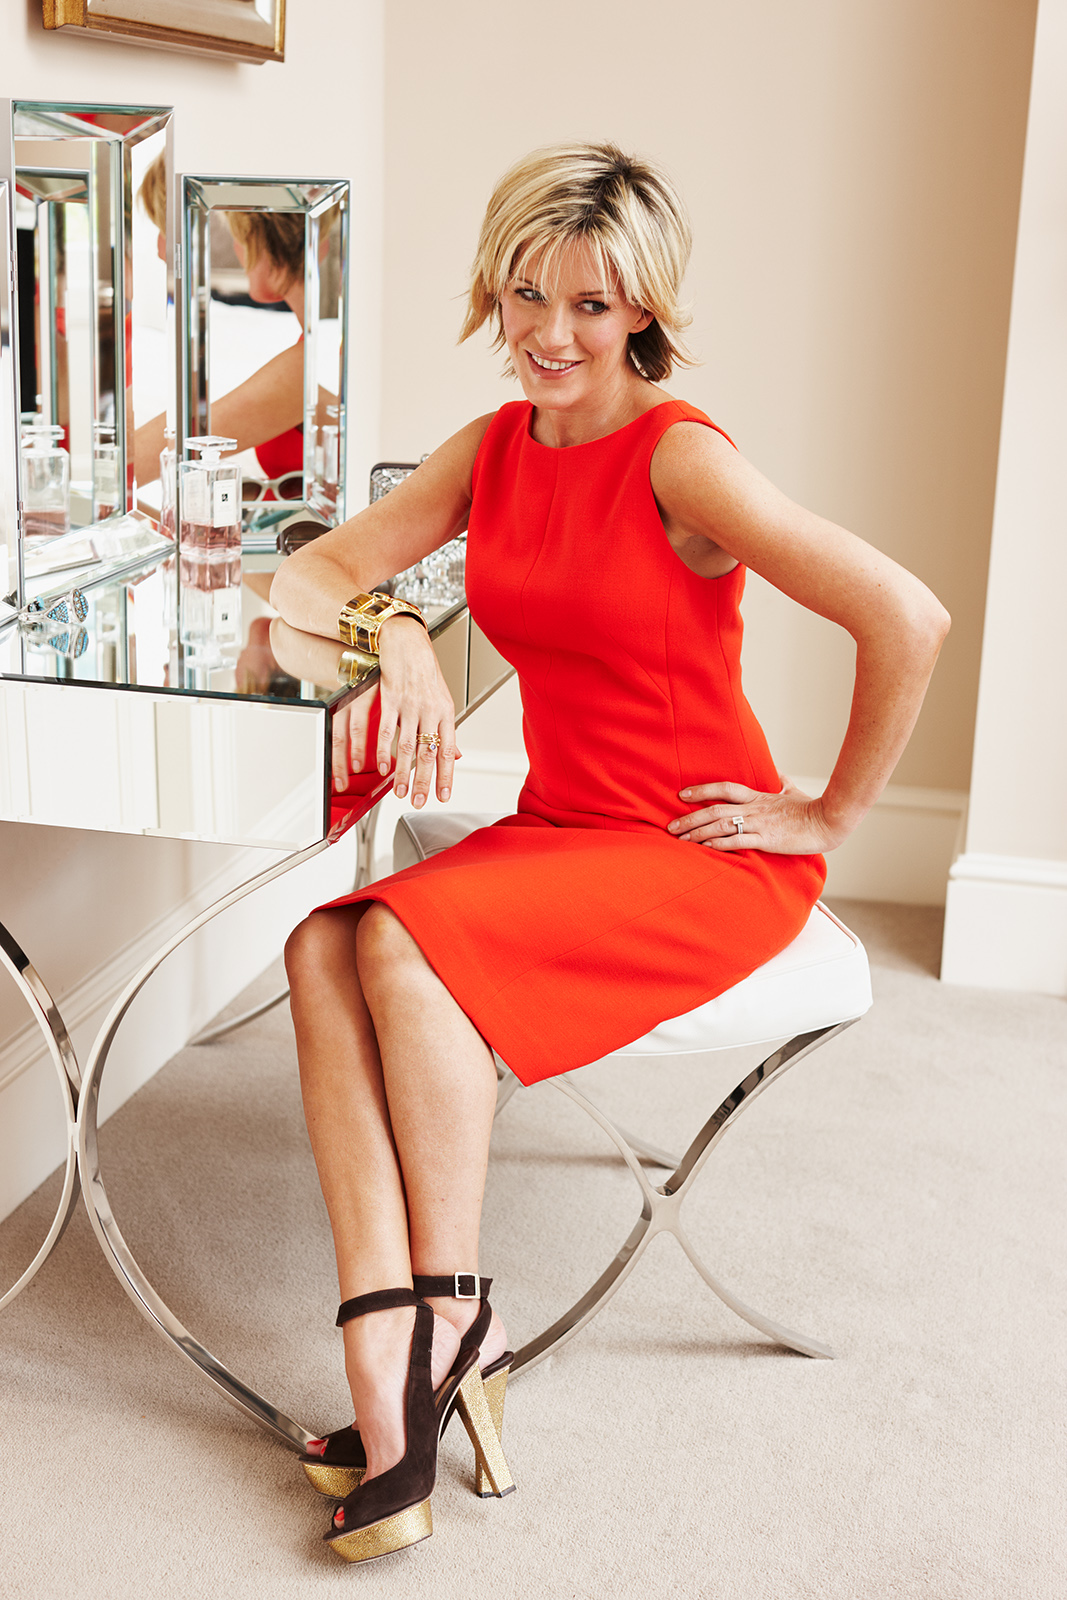 At home with Andrea Catherwood